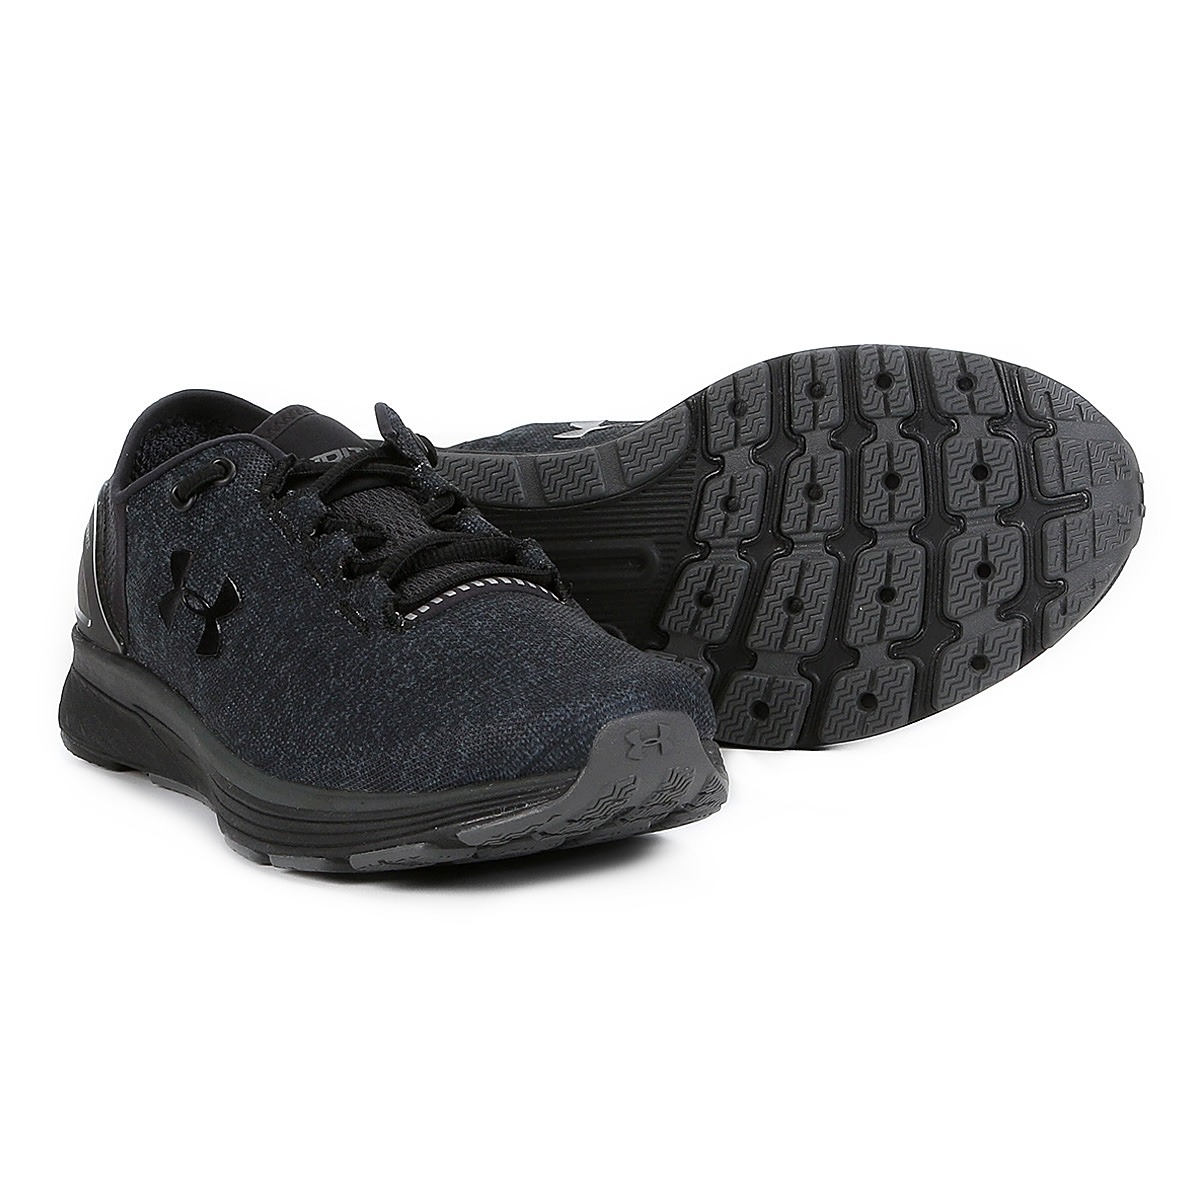 9cc6c5bf8c tênis under armour charged bandit 3 masculino. Carregando zoom.